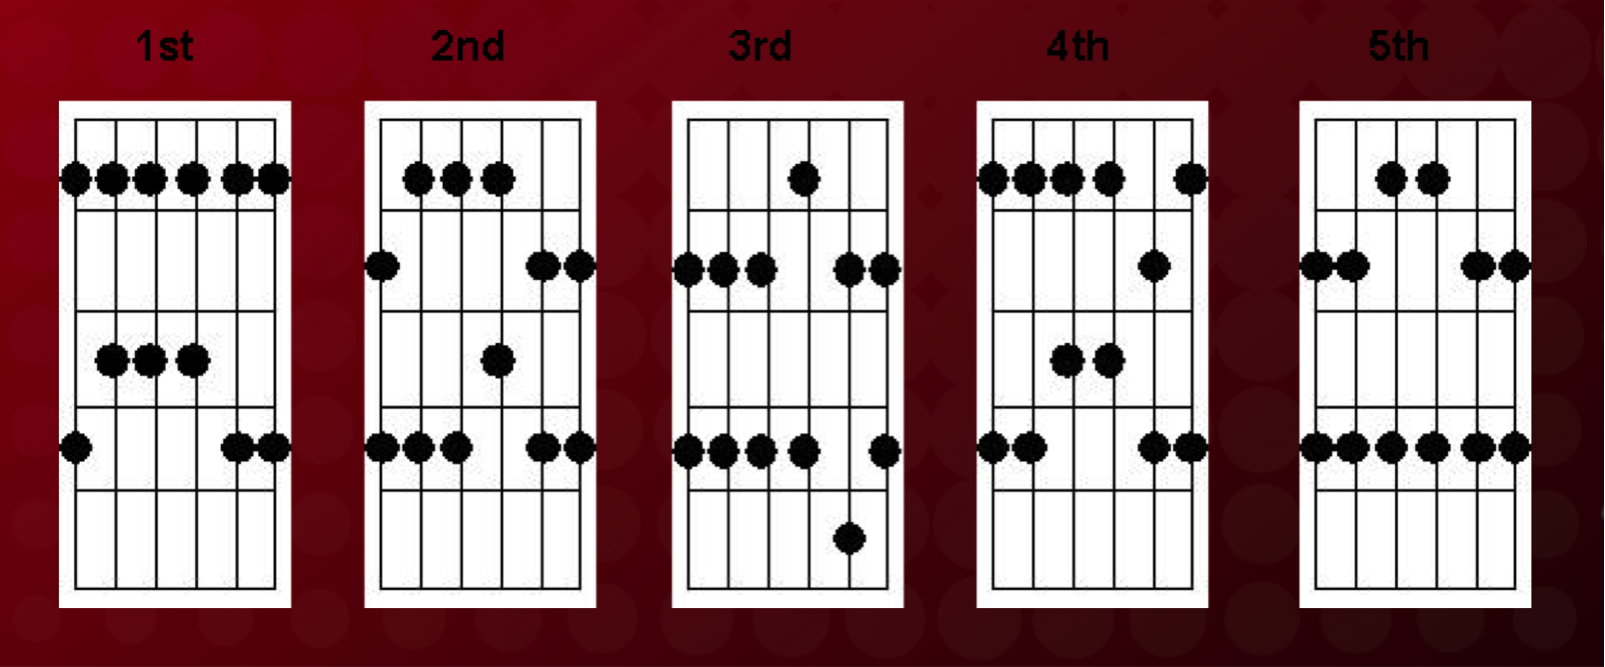 Using Double Stops With The Pentatonic Scales Great Exercise